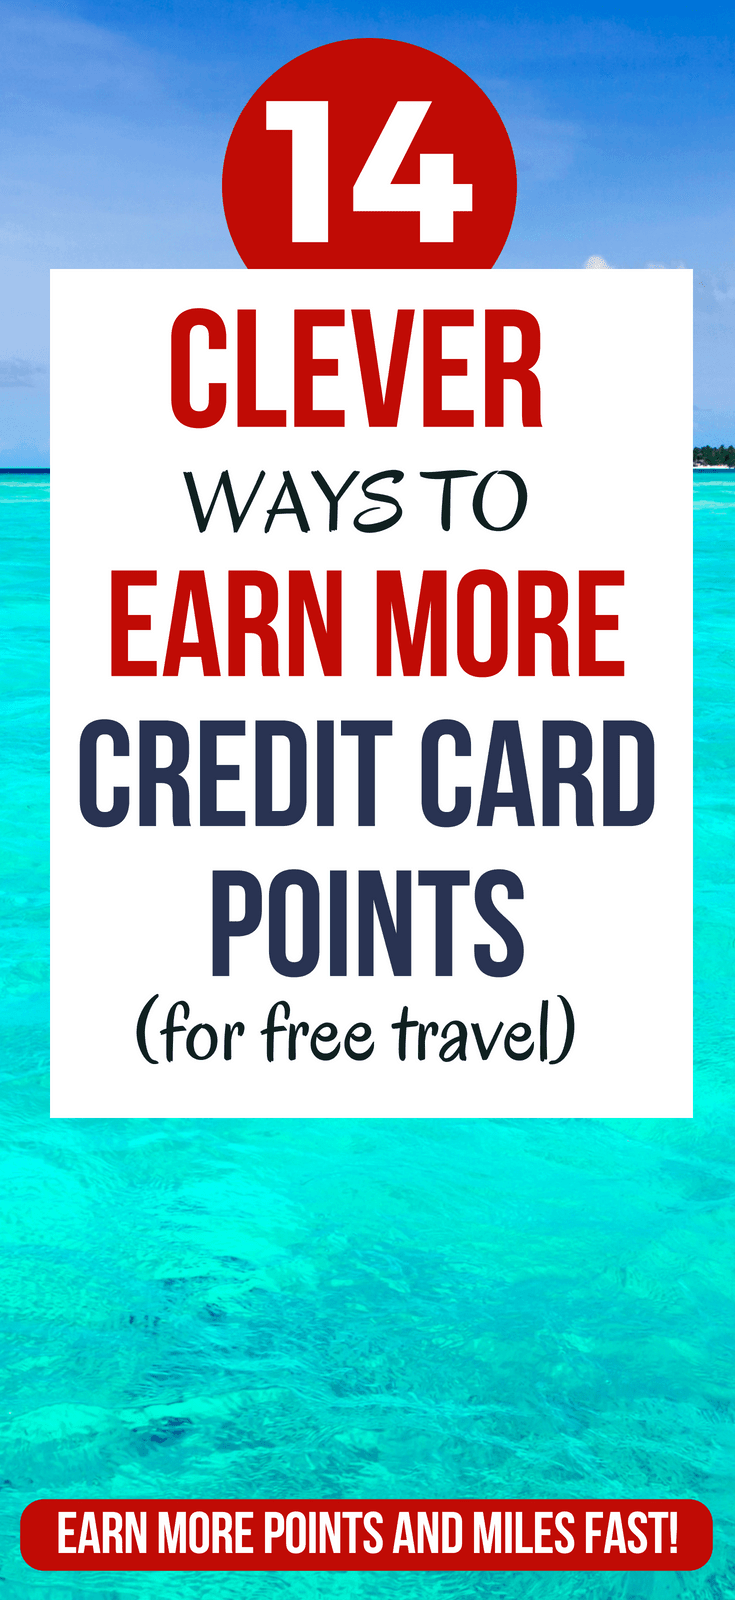 14 Clever Ways To Earn More Credit Card Points & Miles travel miles credit cards | credit card rewards travel | earn miles | credit card hacks ideas\ #thewaystowealth #traveltips #hacks #budgettravel